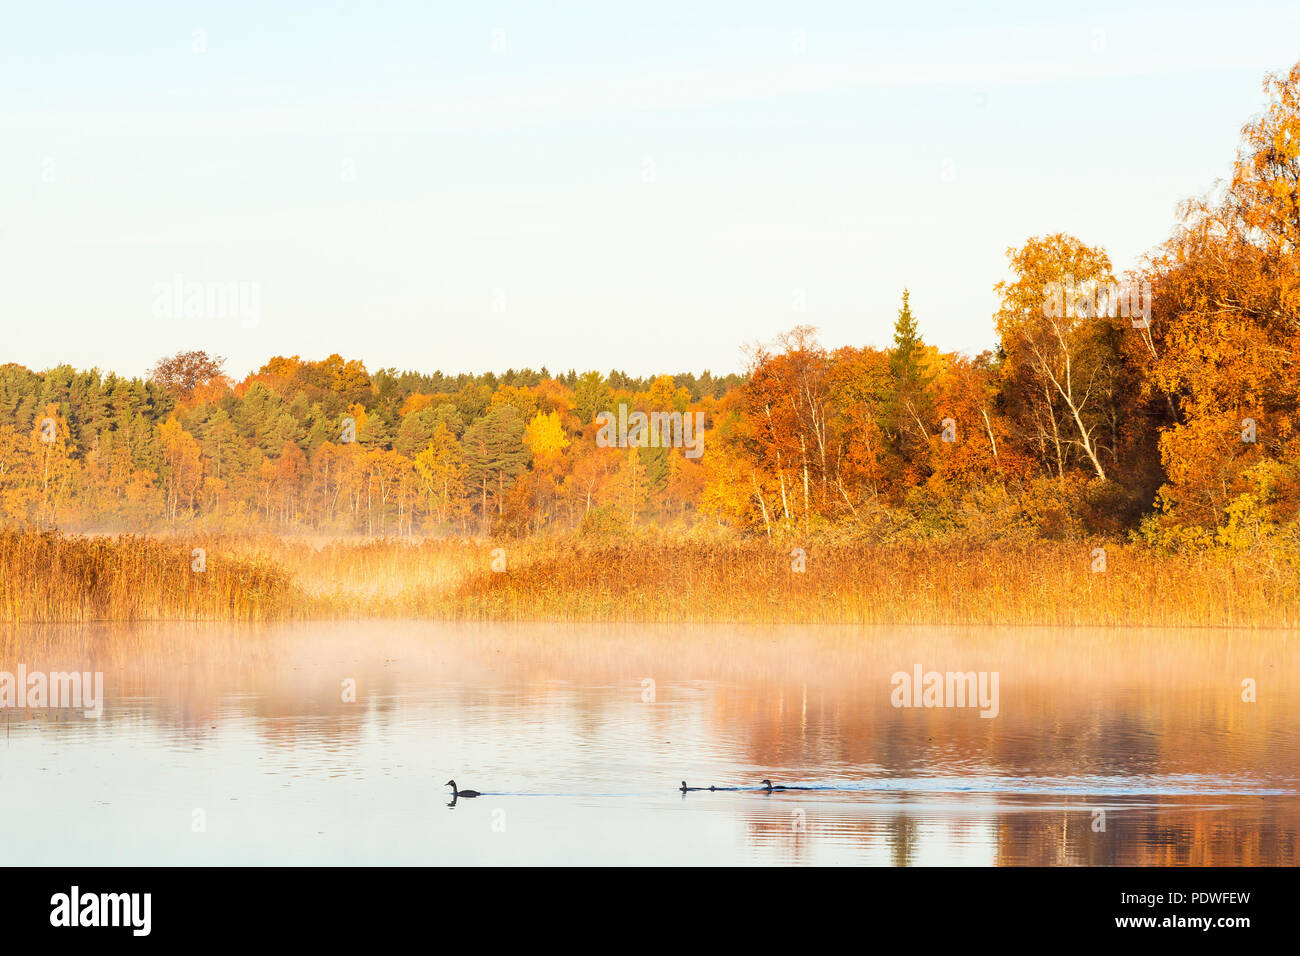 Great Crested Grebes swimming in dawn the mist on the lake with autumn colors - Stock Image